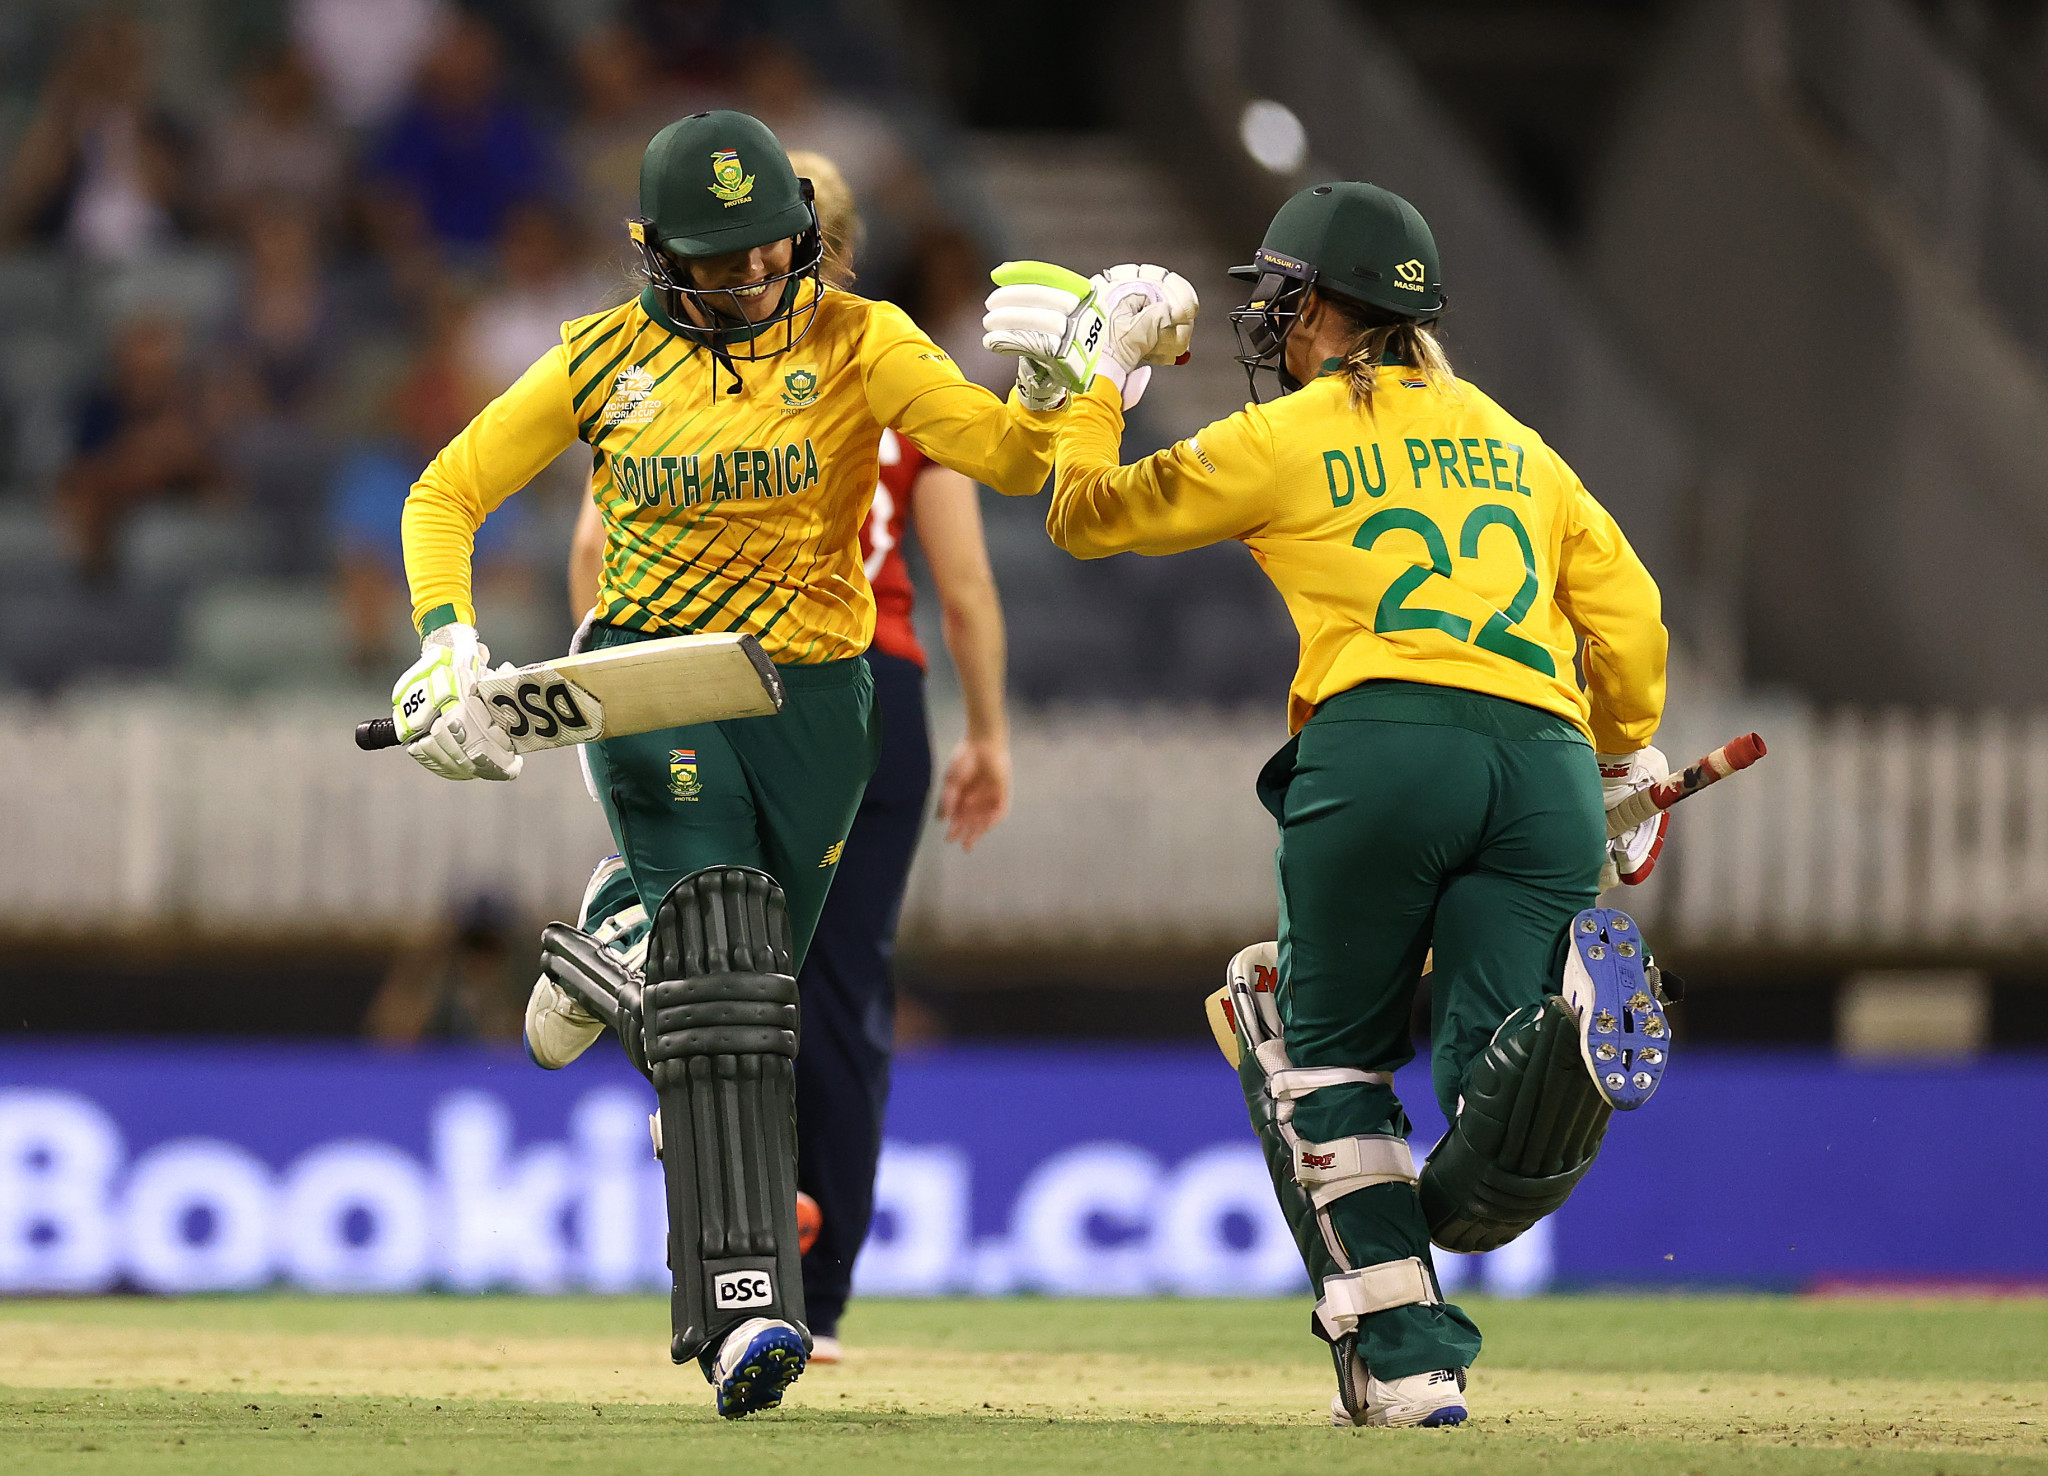 South Africa shock England at Women's T20 World Cup